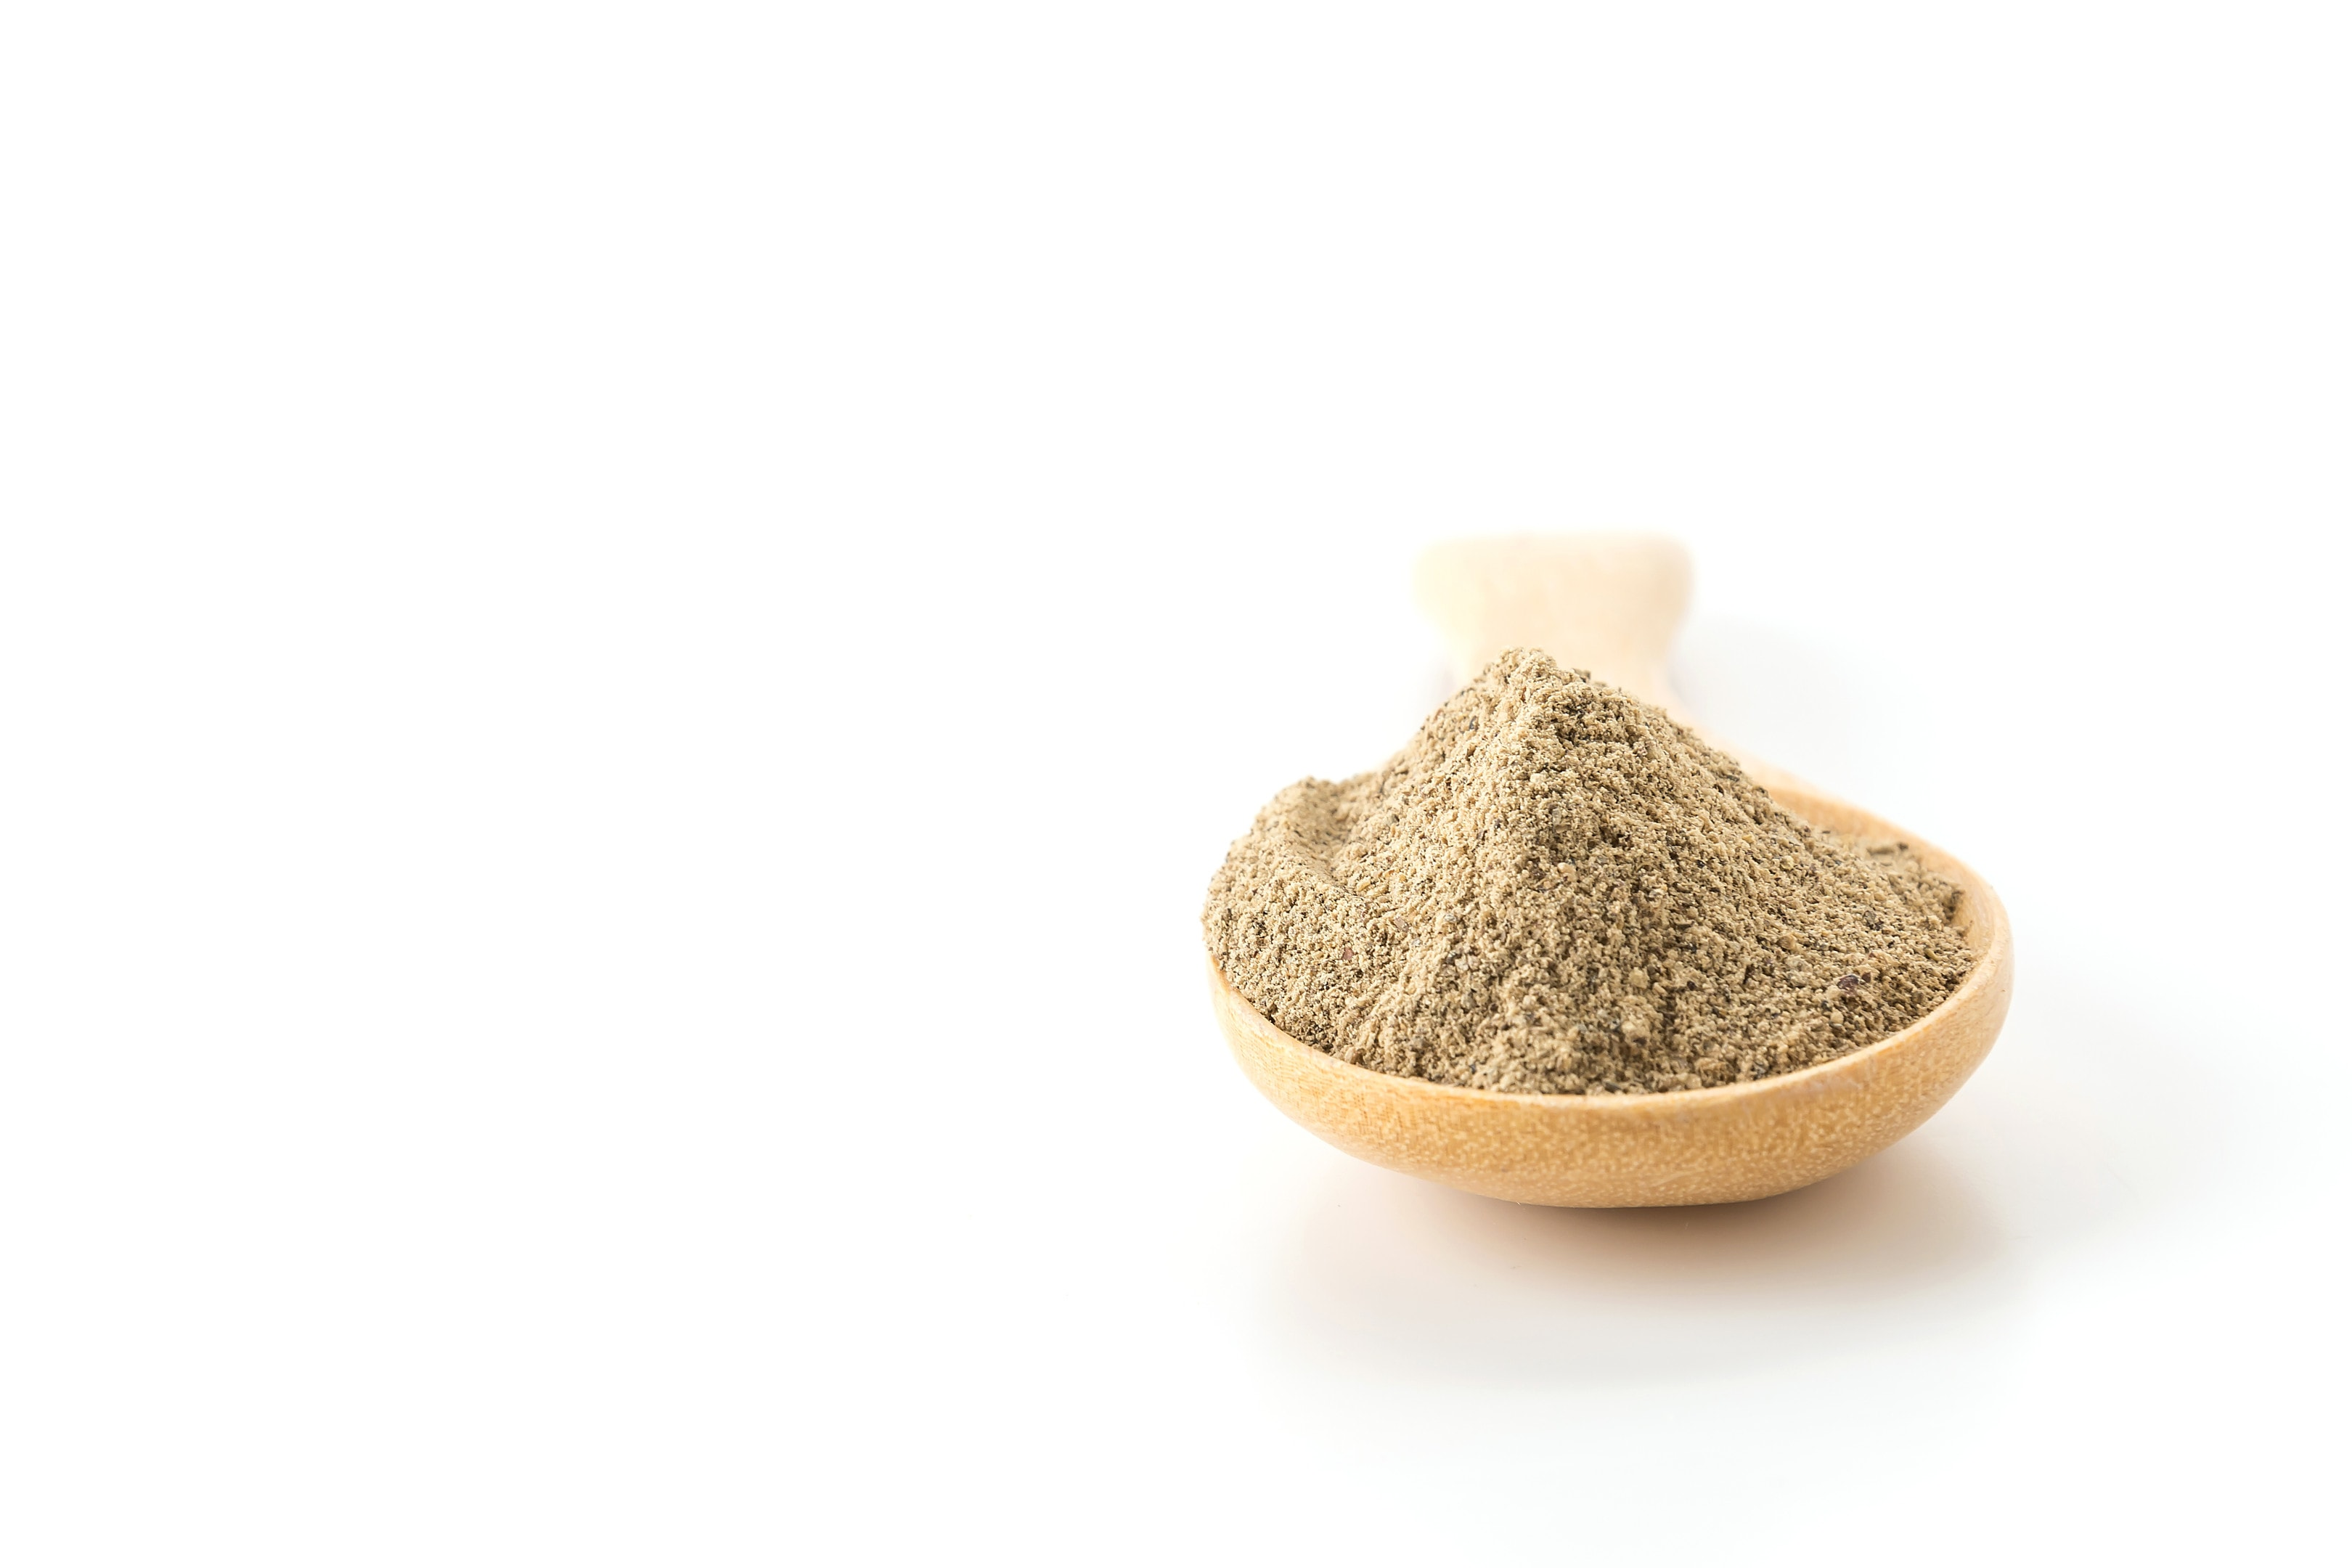 Vekhand powder on a wooden spoon